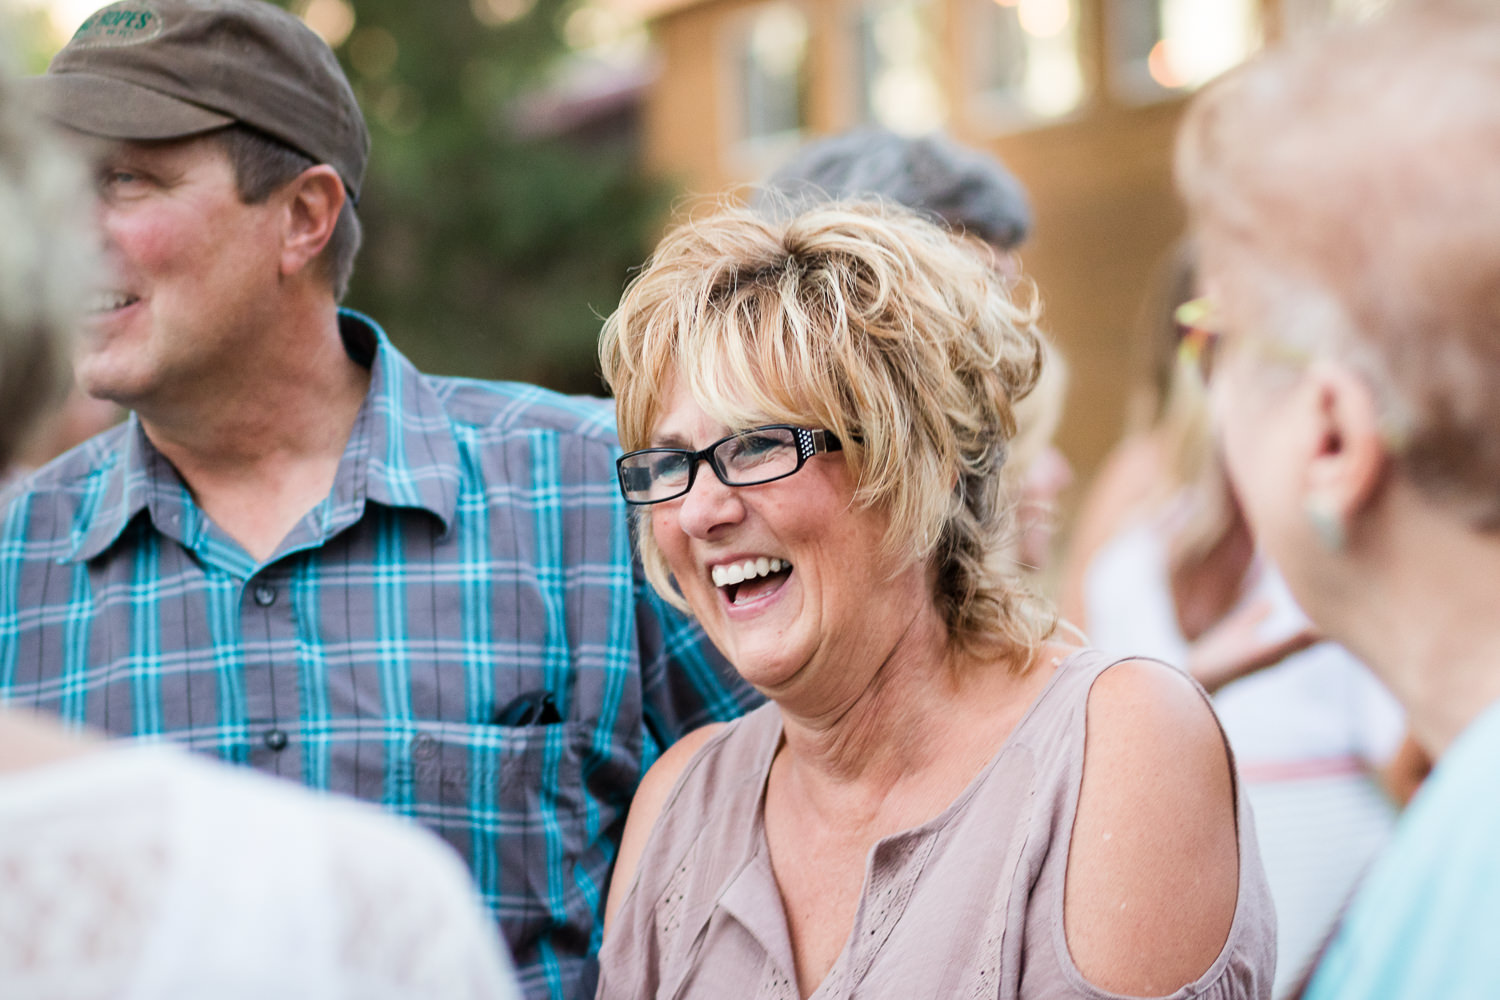 billings-montana-swift-river-ranch-wedding-reception-guests-laughing-outside.jpg